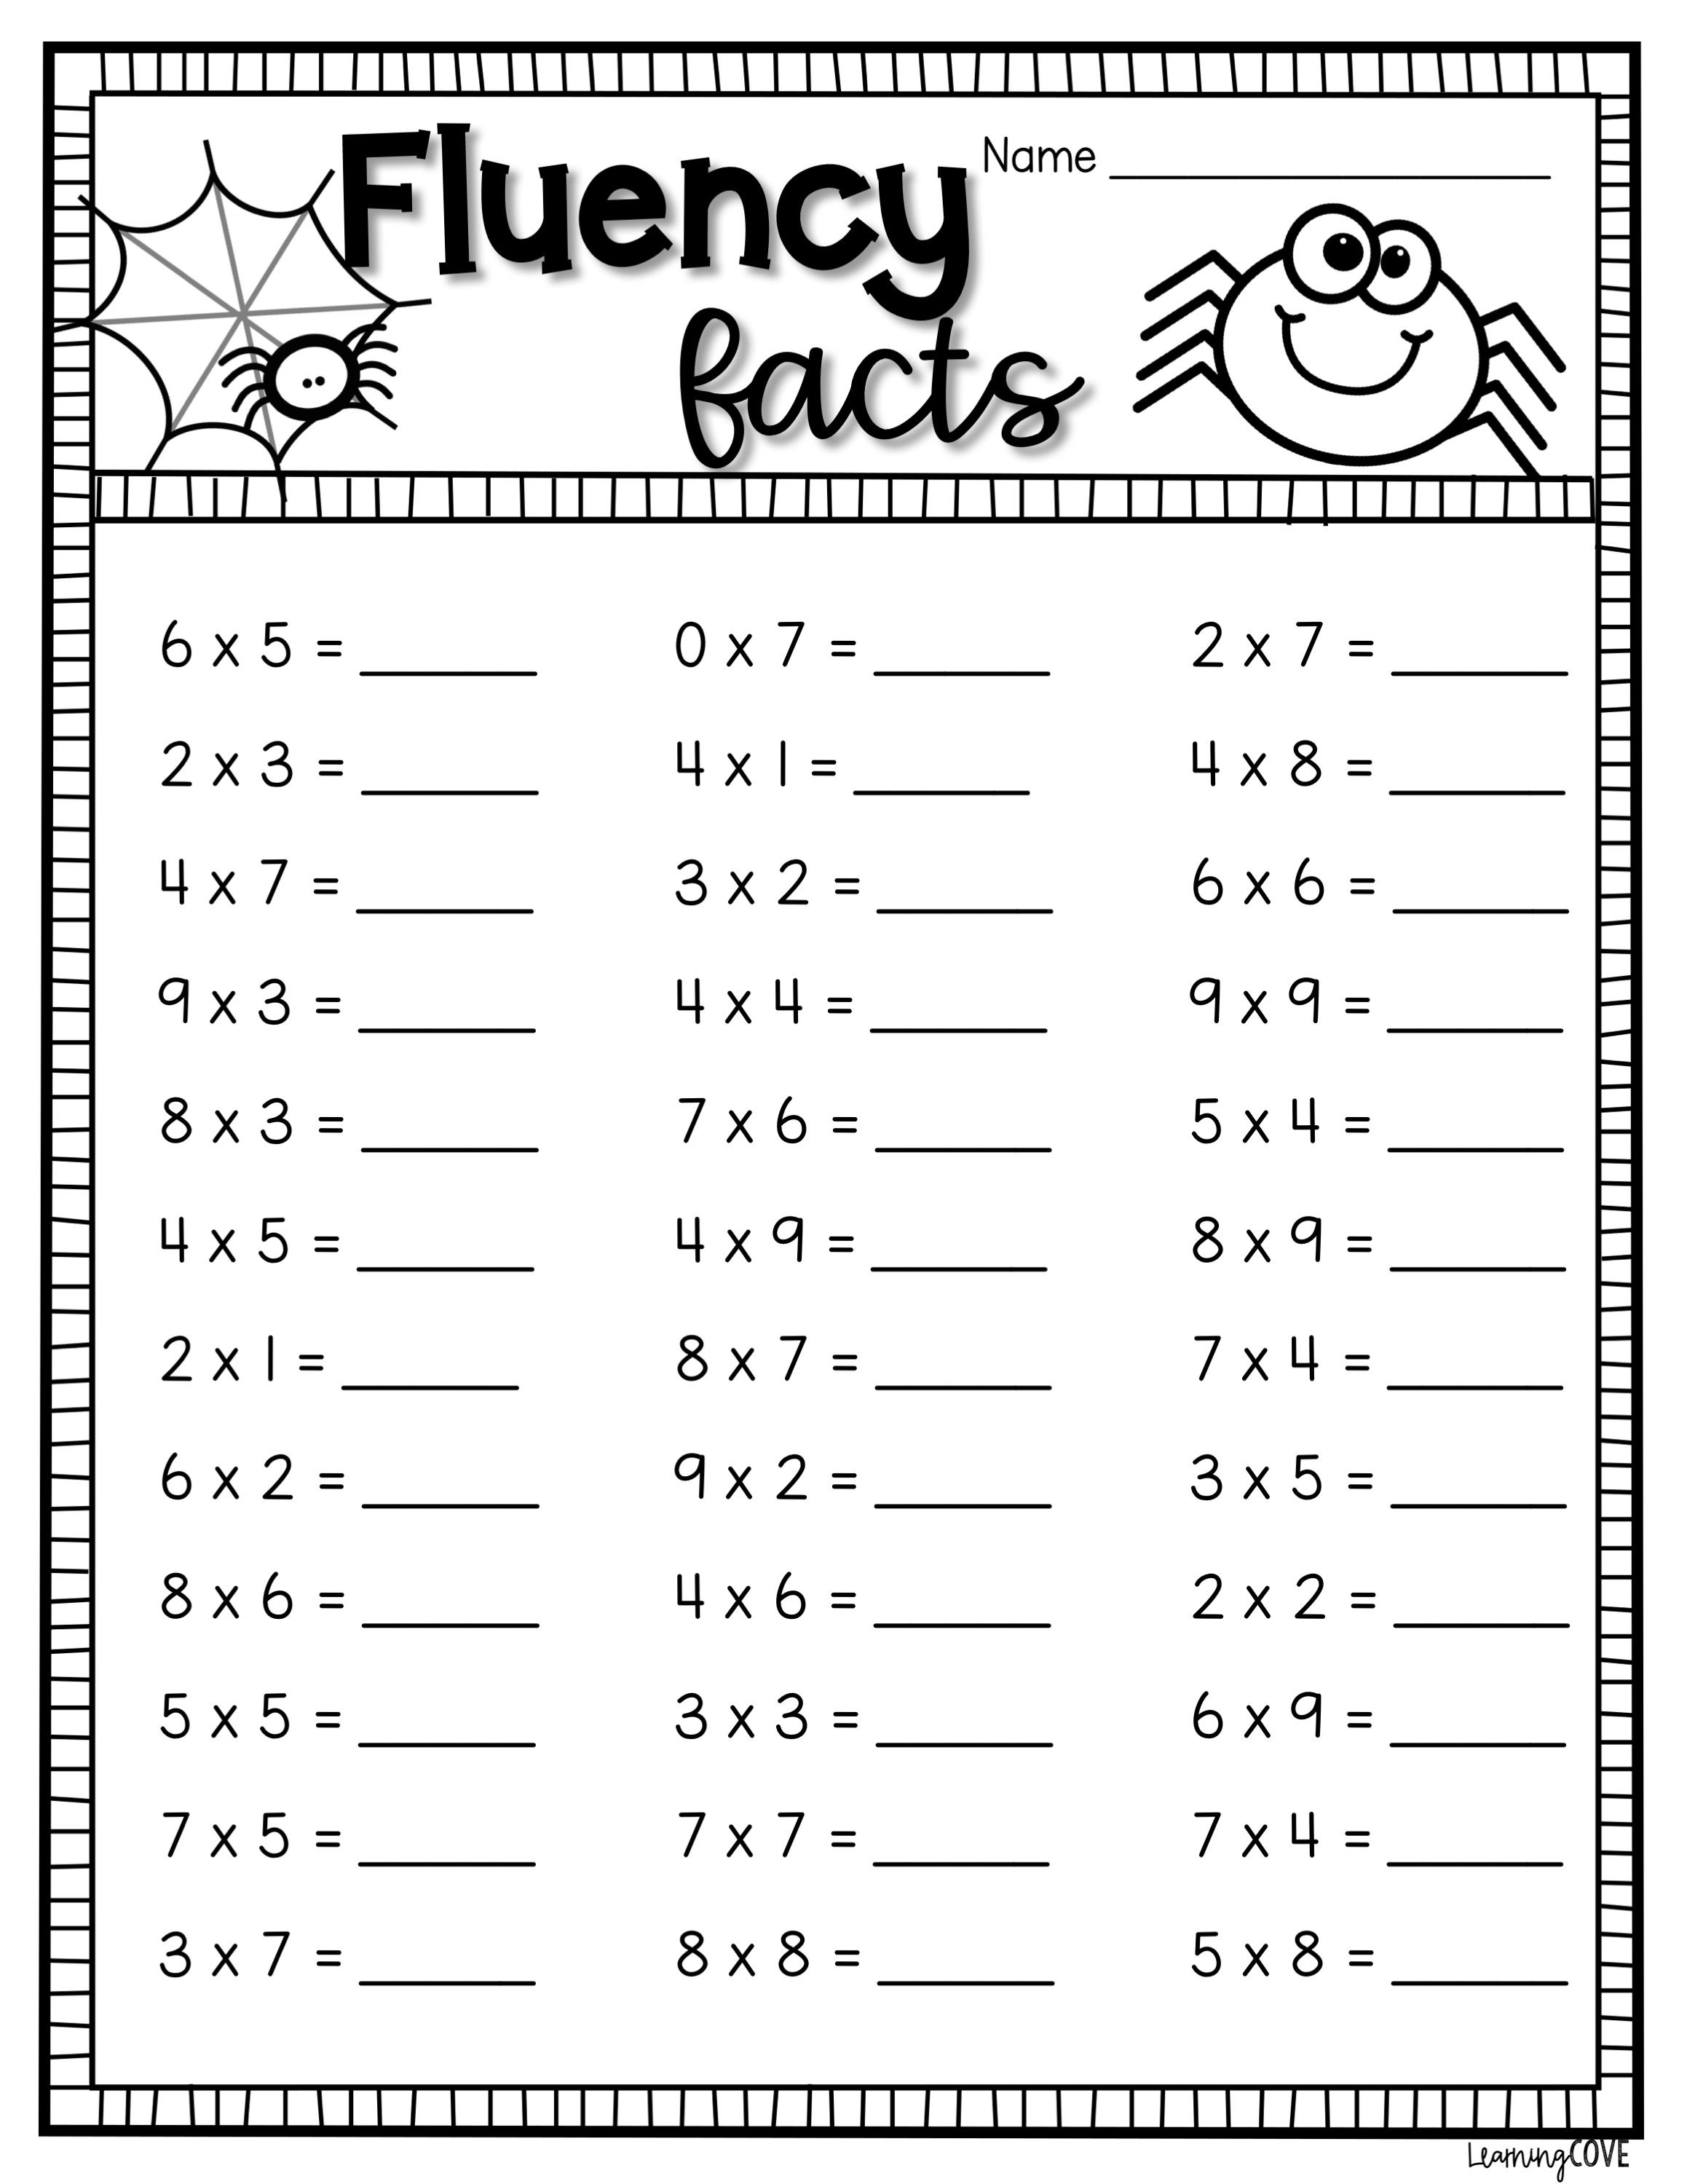 Halloween Multiplication Worksheets In